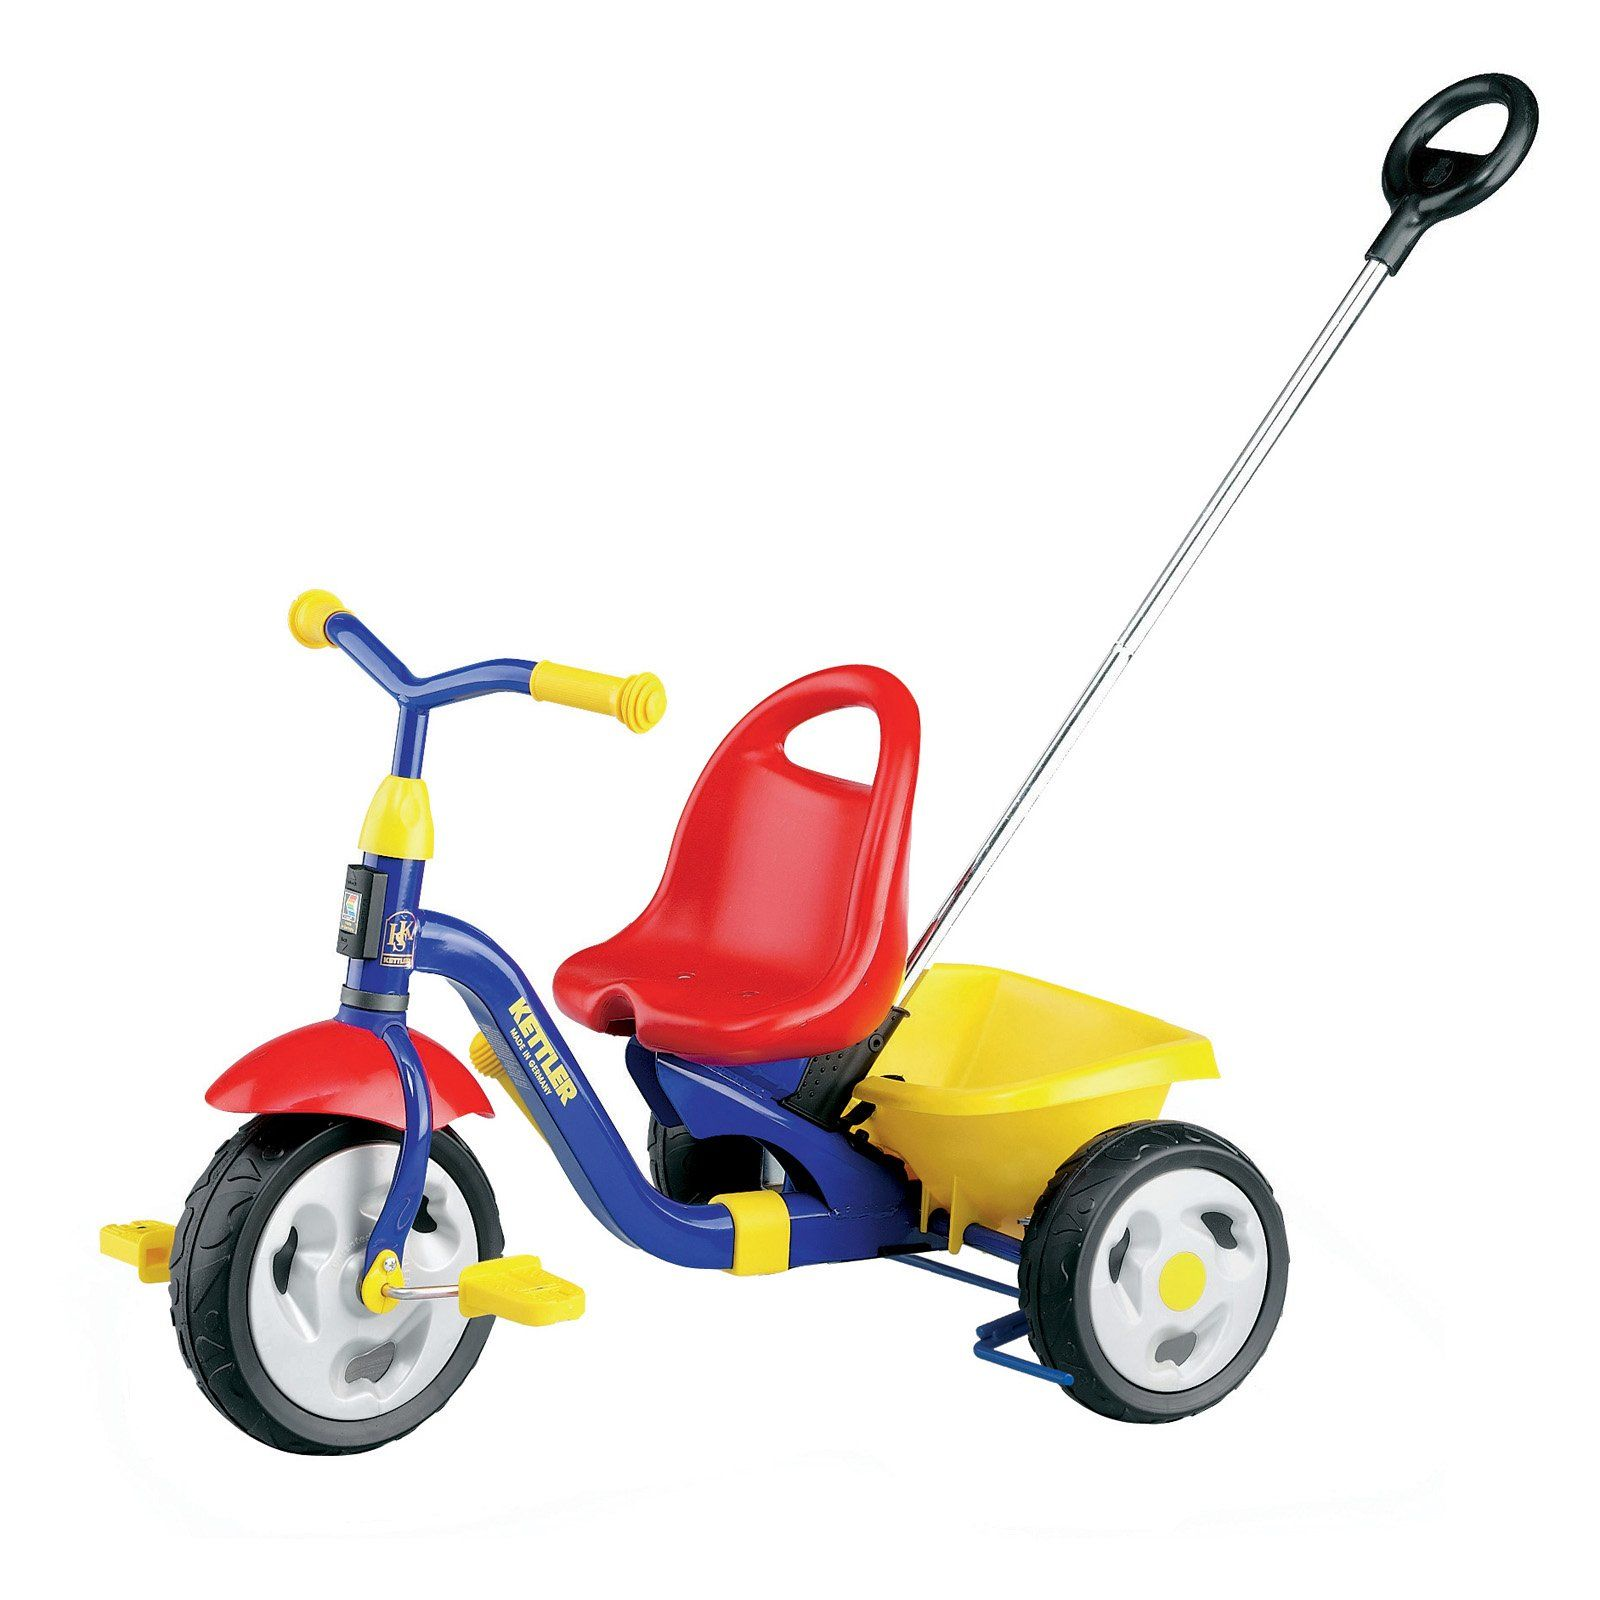 Kettler Kids Comfort Kettler Kettrike Klassic Tricycle Innovative Kid Stuff